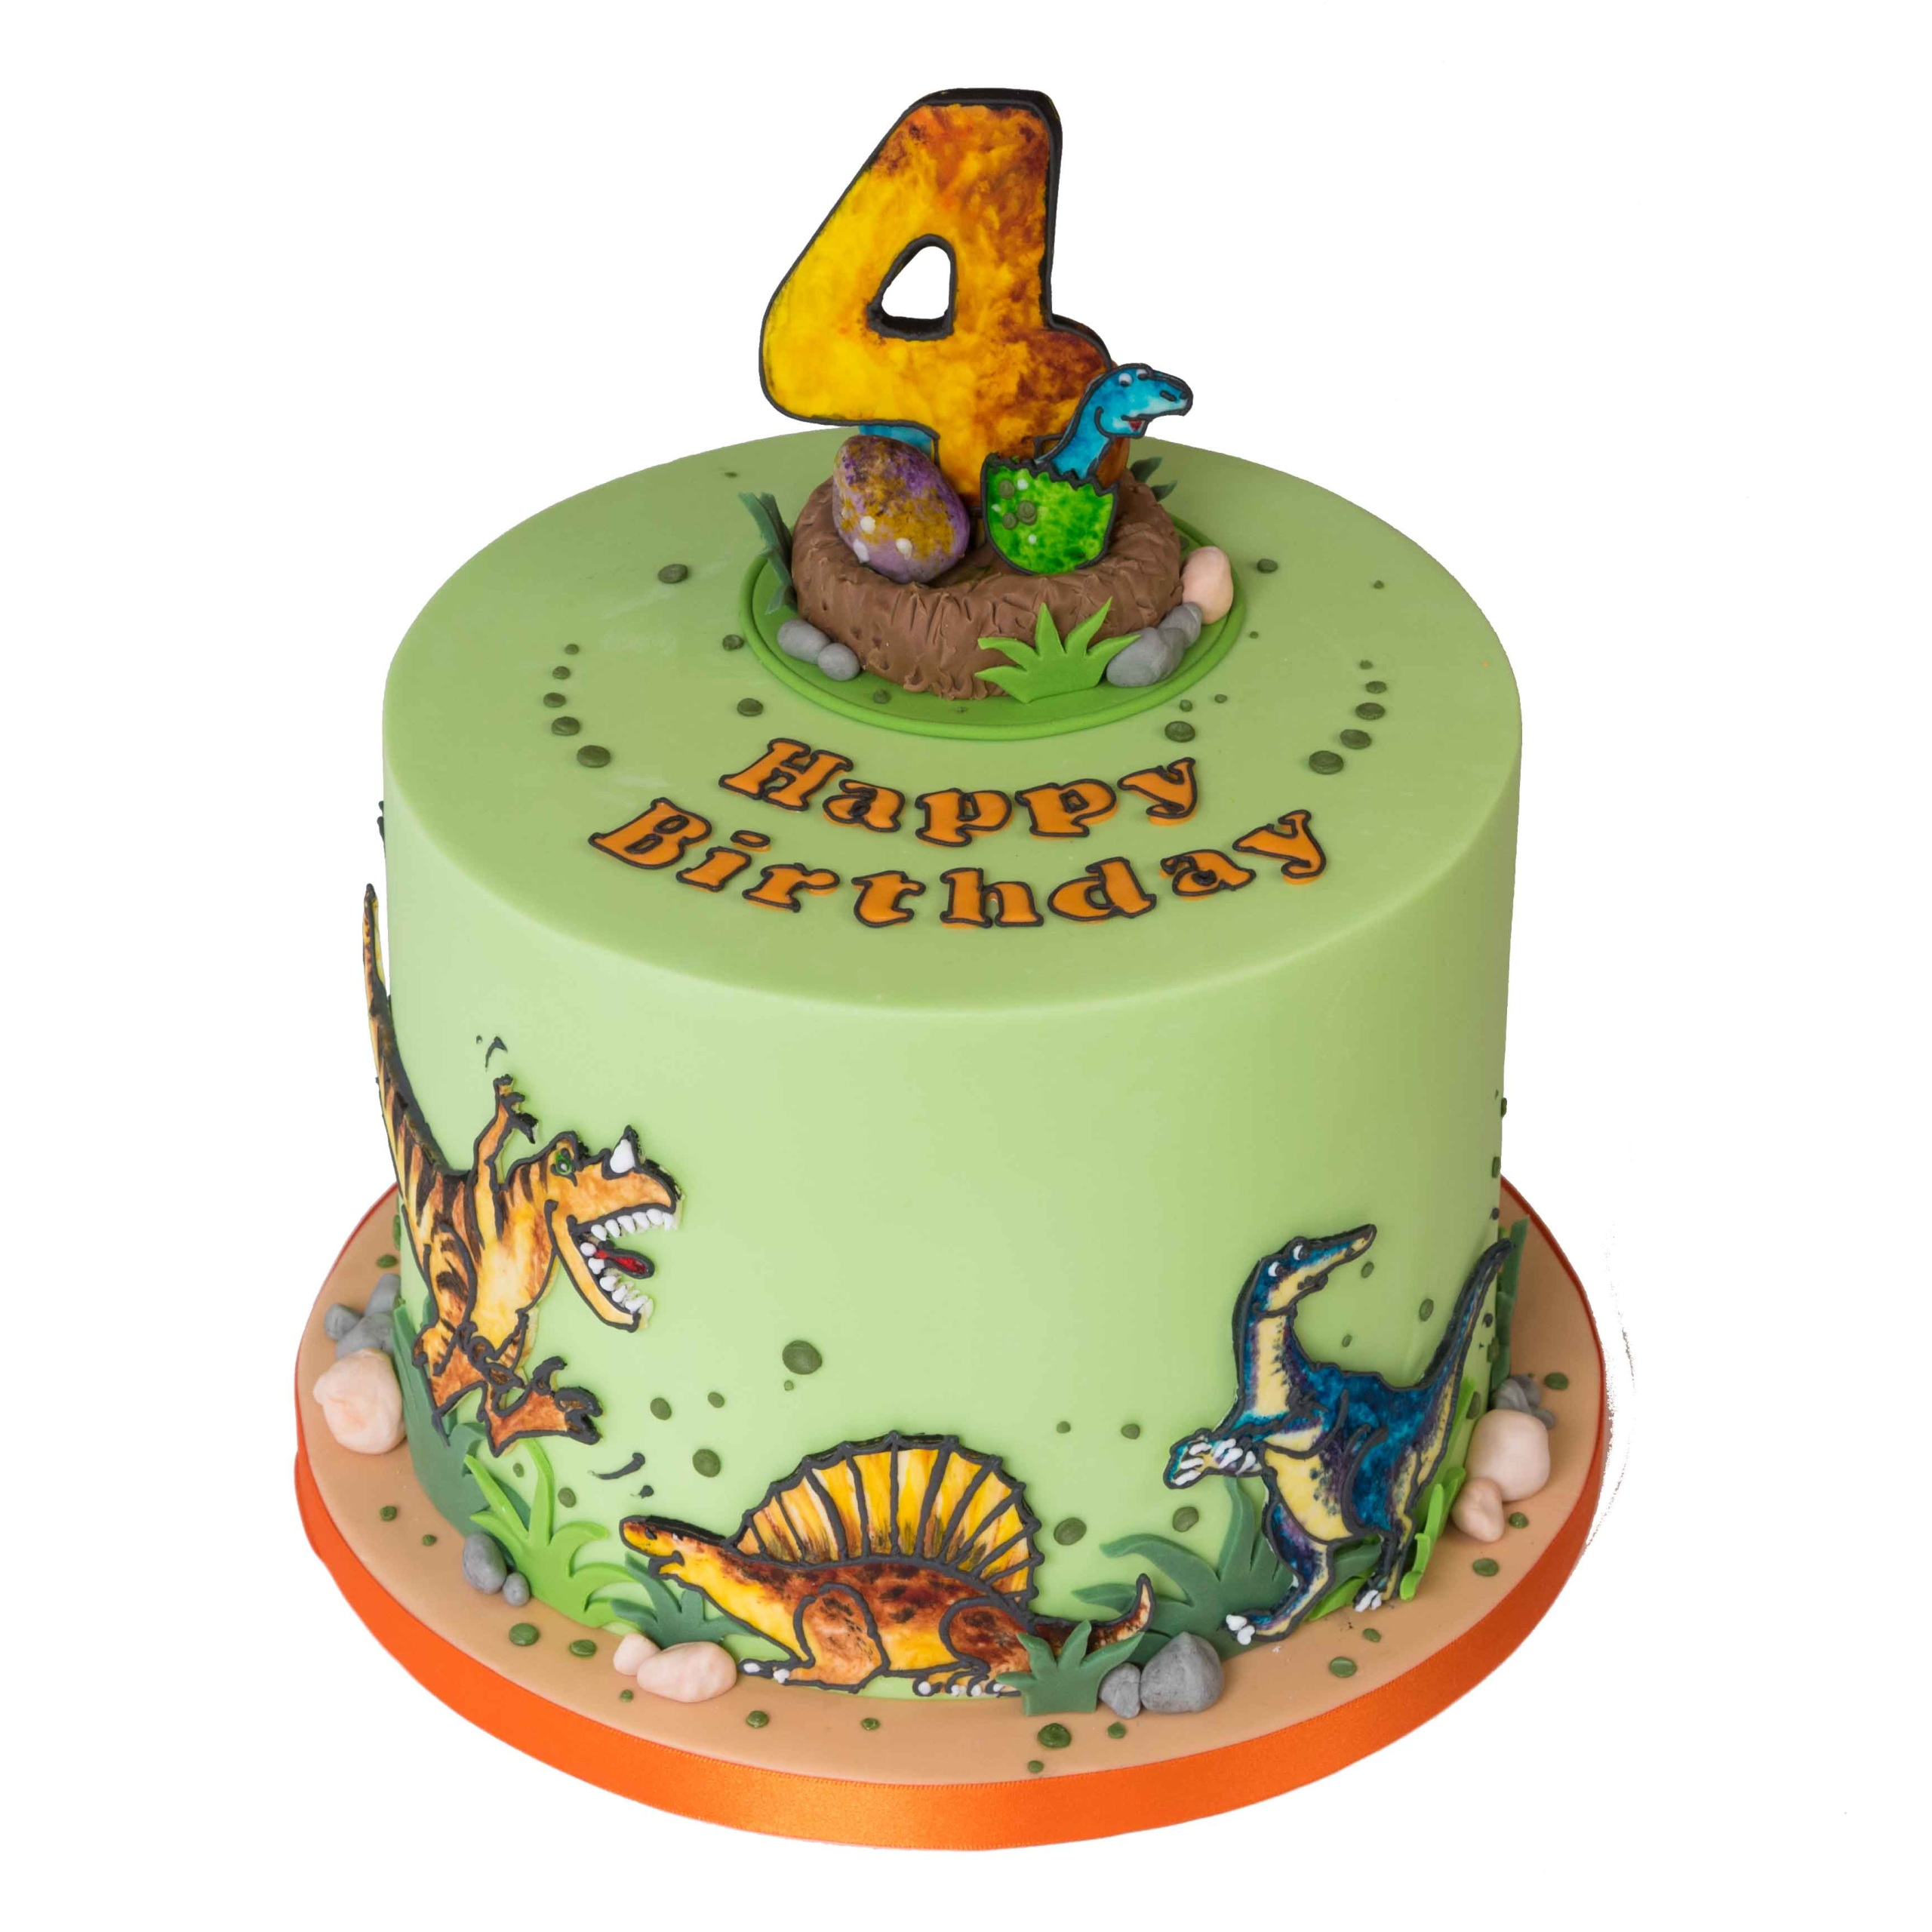 Dinosaurs Birthday Cake Designs